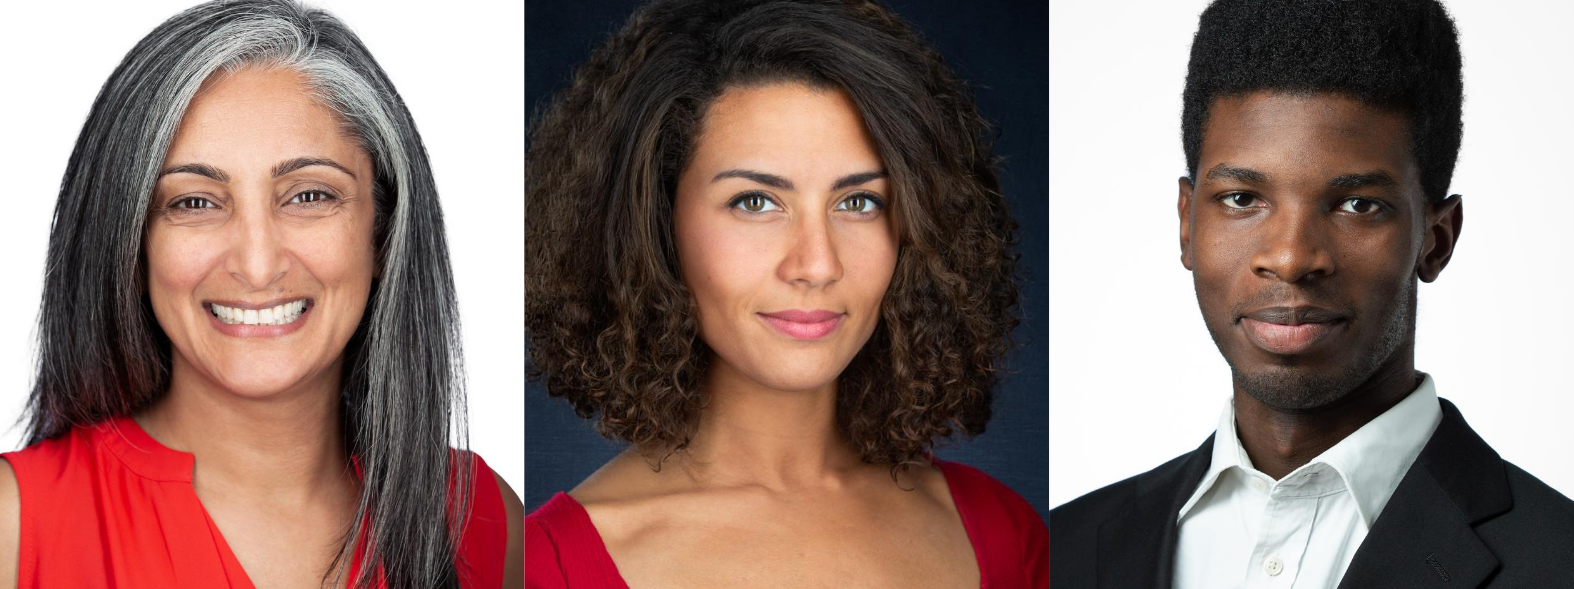 3 headshots people of color